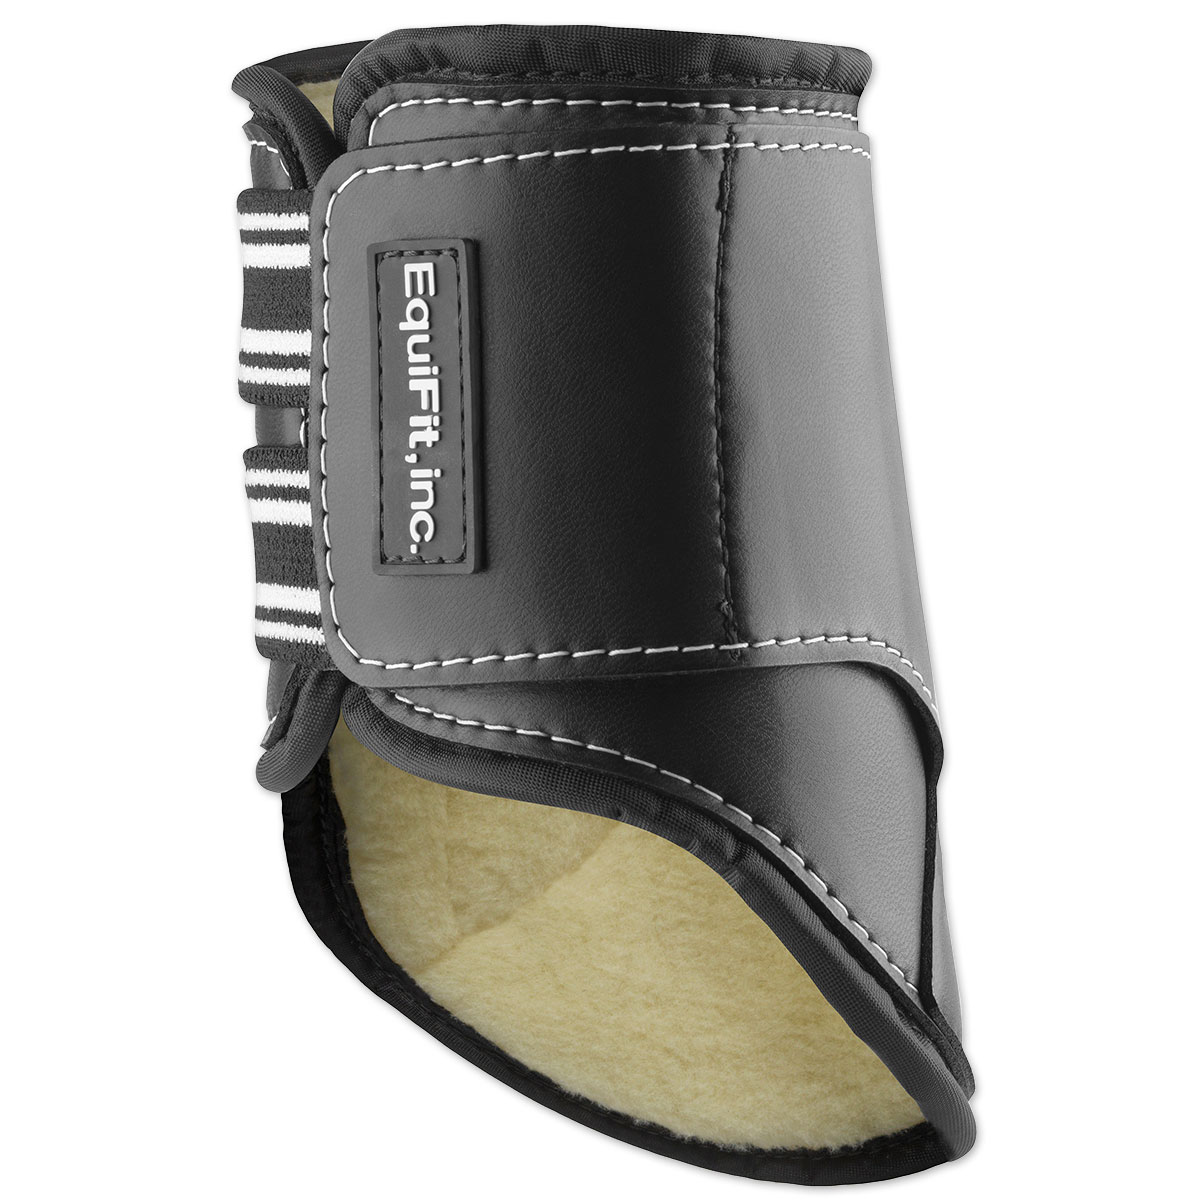 EquiFit MultiTeq SheepsWool Pony Hind Boot